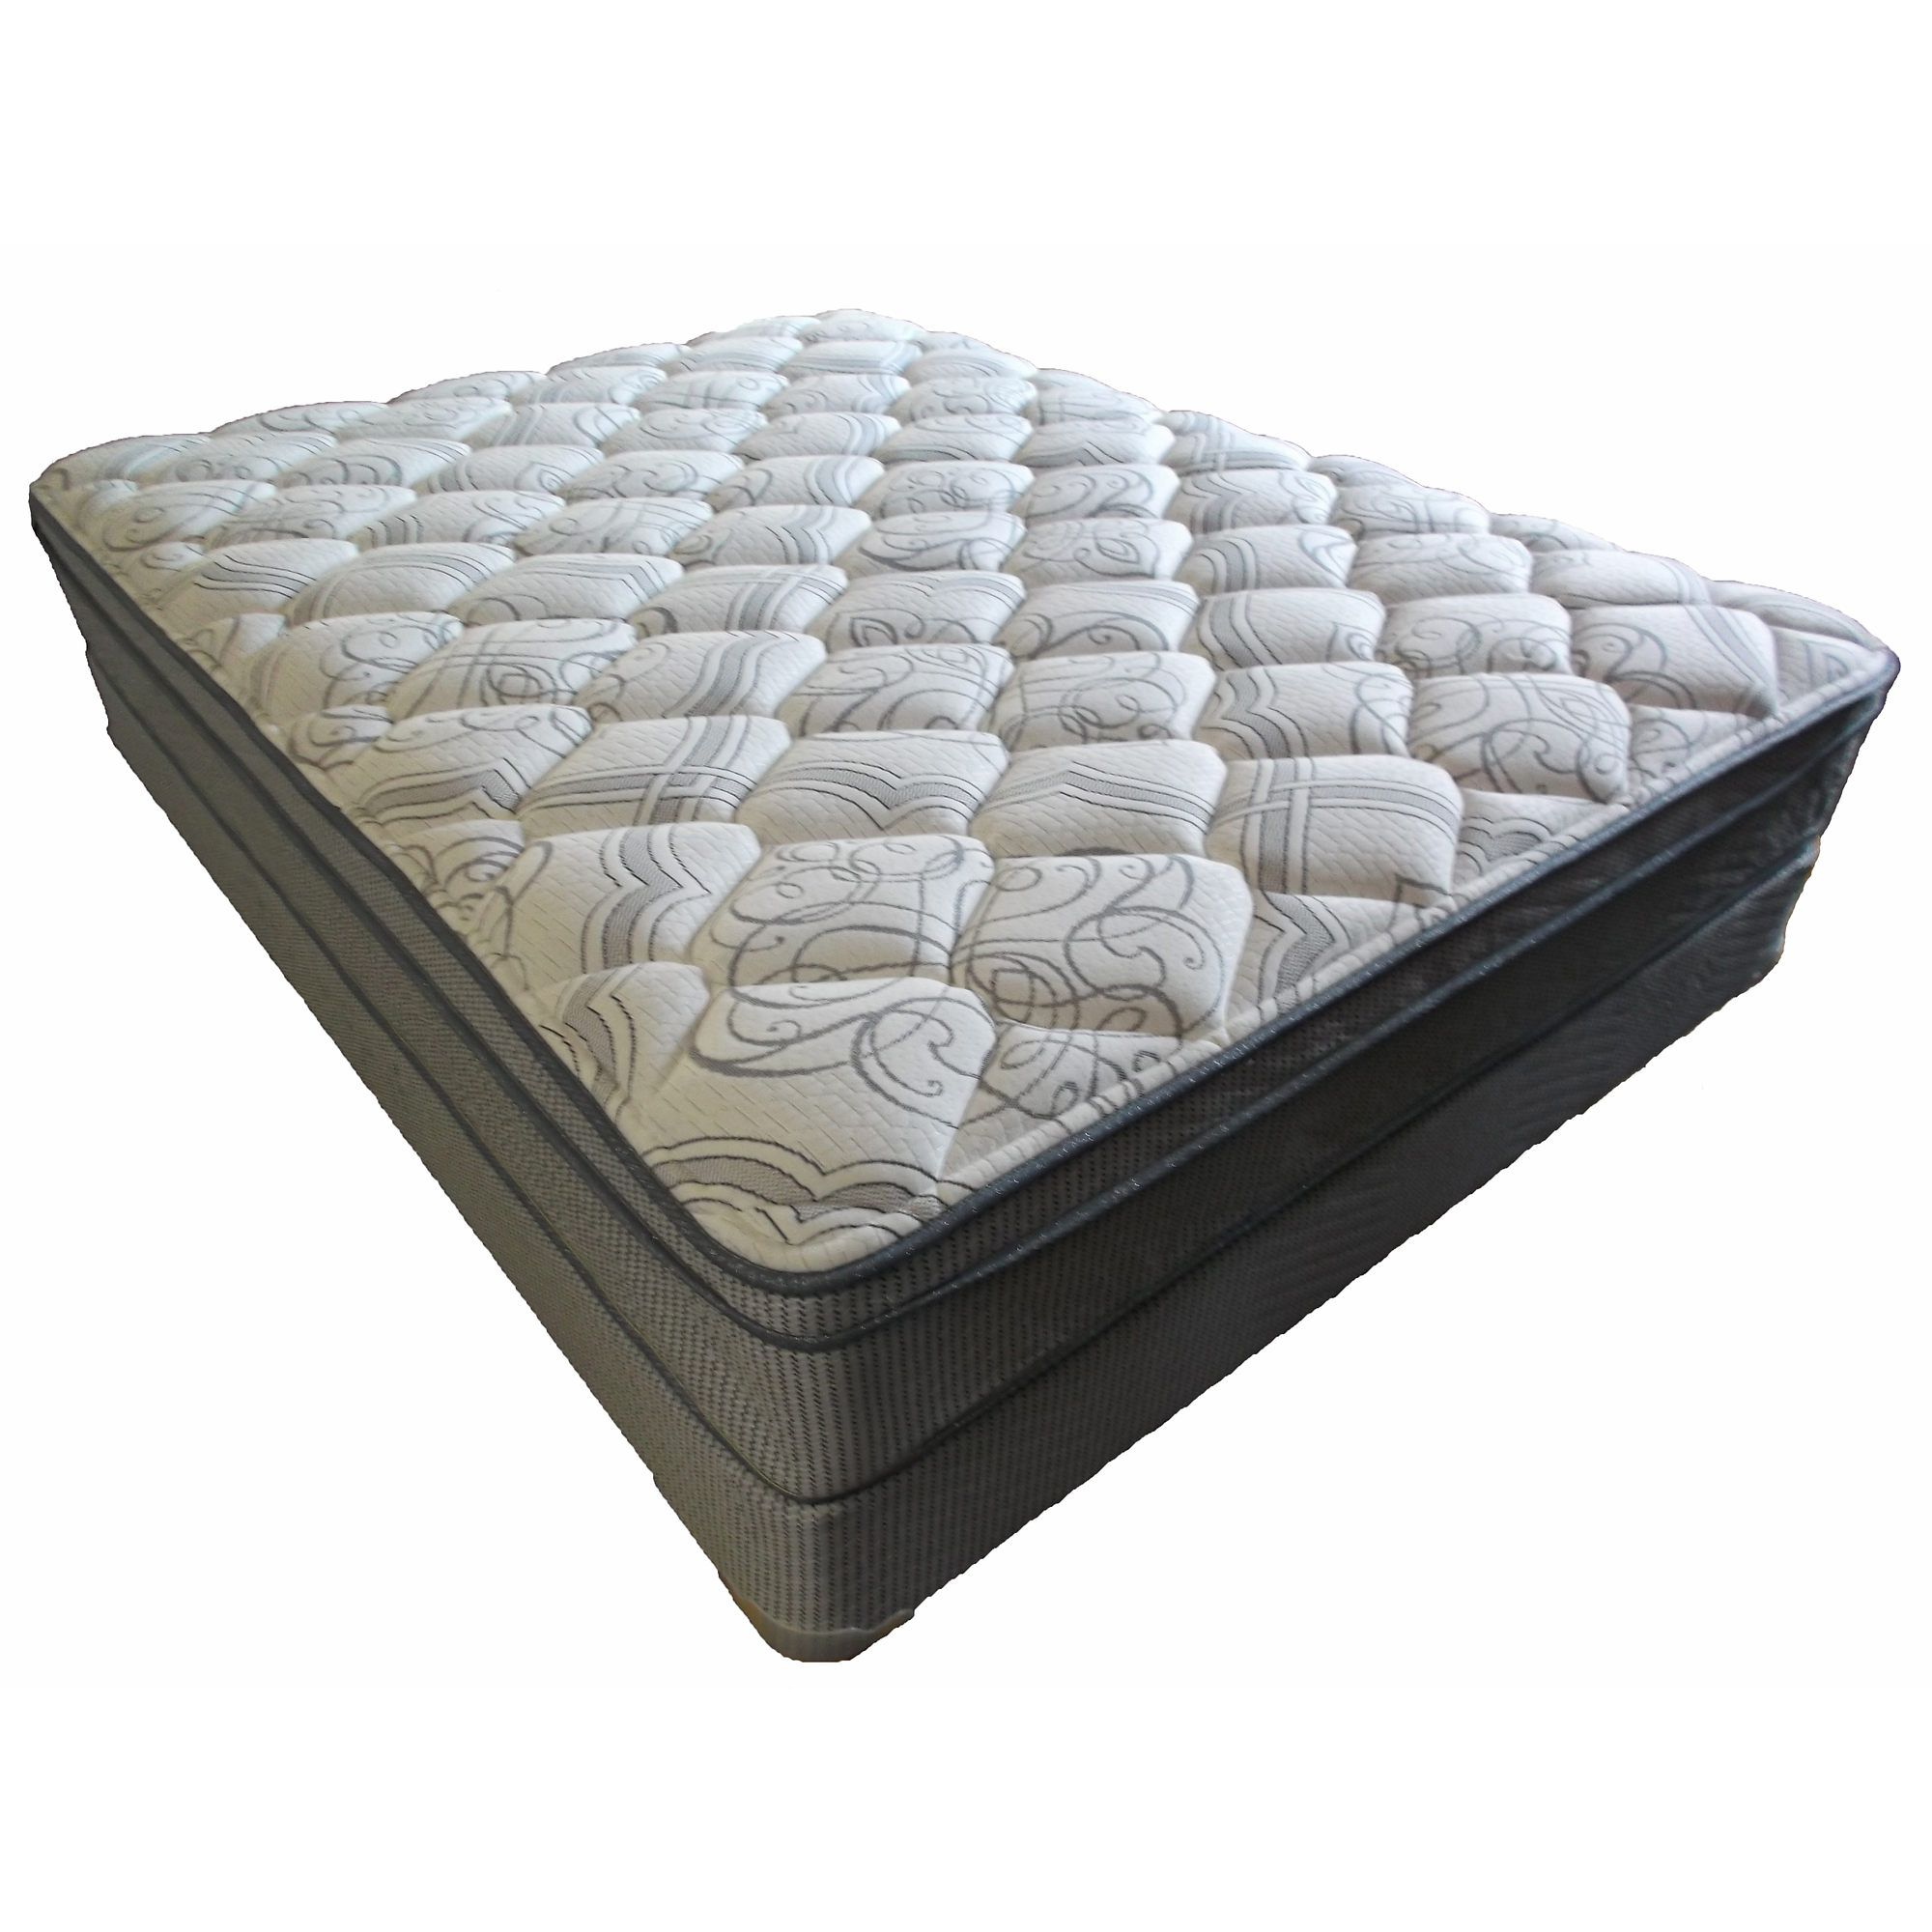 berkley jensen queensize euro pillowtop mattress set bju0027s wholesale club